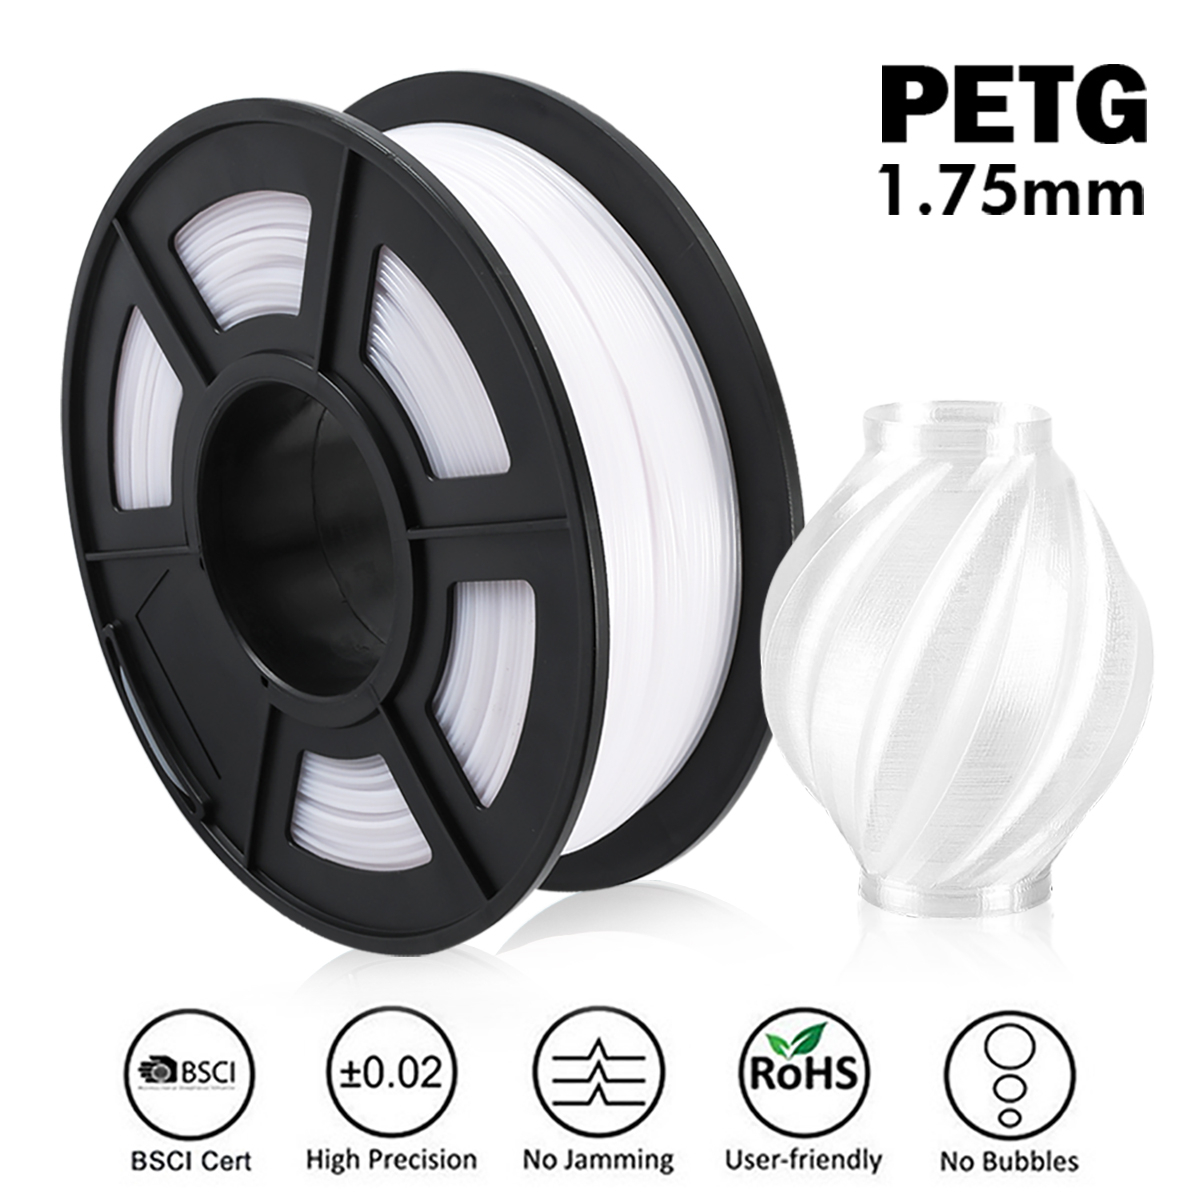 PETG 3D Printer Filament 1.75mm 1KG 2.2lbs Spool Support Defferent Material 3D Printer Refill Full Color 3D Filament Order